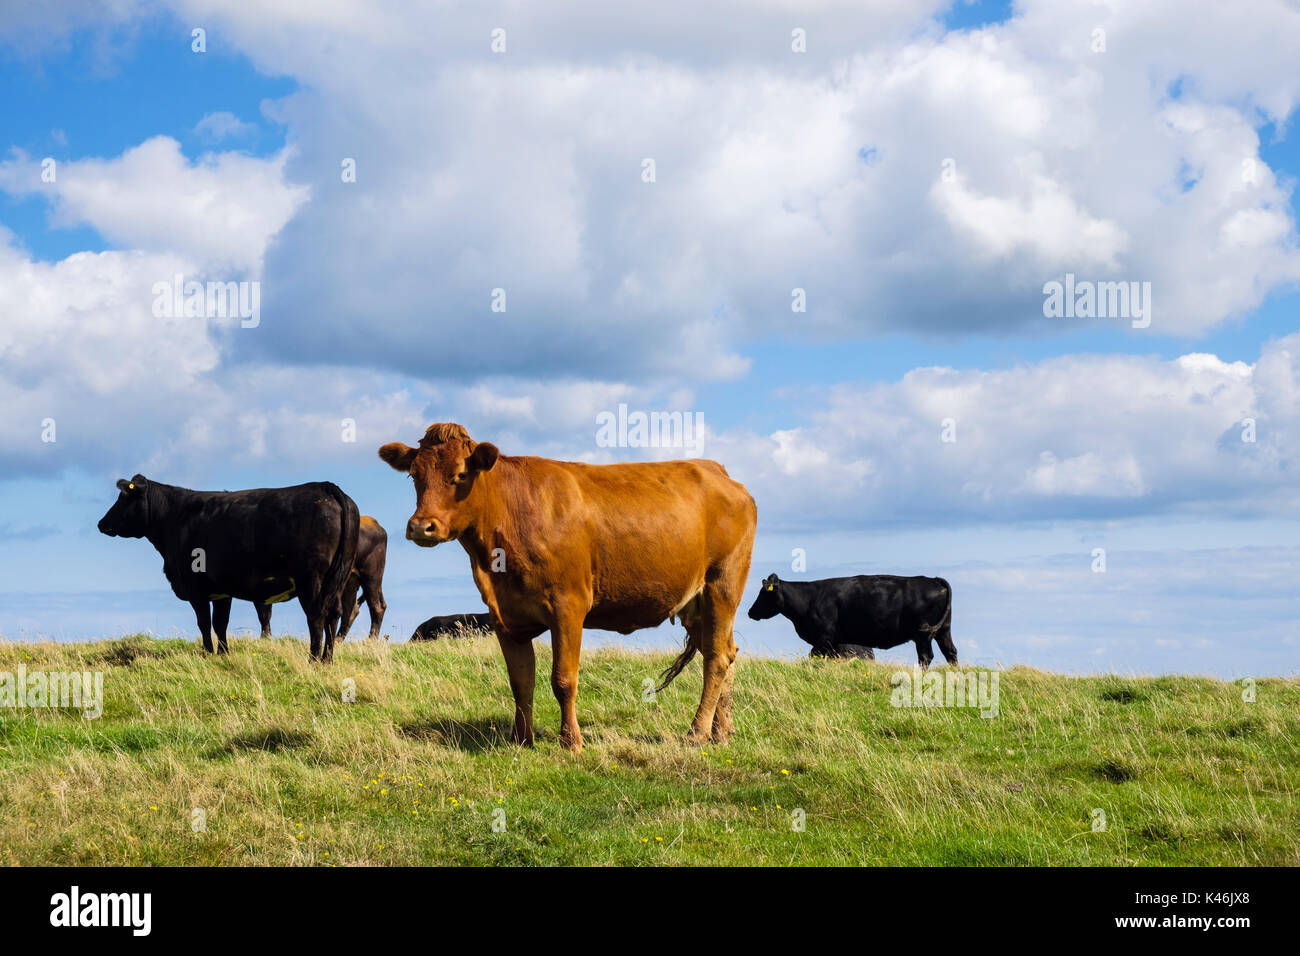 Herd of black and brown free-range dairy cows in a field in late summer. Isle of Anglesey, Wales, UK, Britain - Stock Image